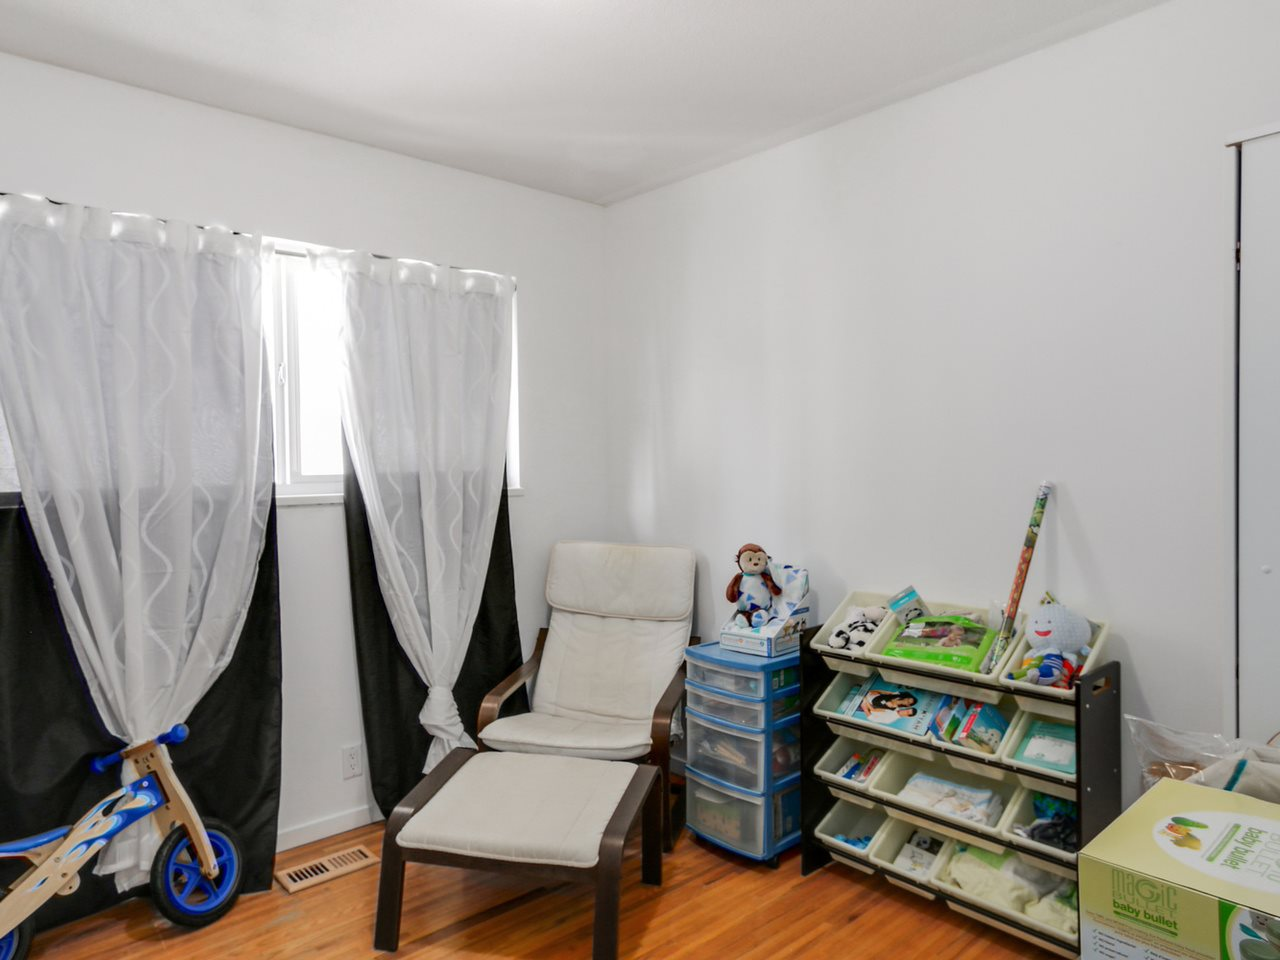 Photo 11: 2542 E 28TH AVENUE in Vancouver: Collingwood VE House for sale (Vancouver East)  : MLS® # R2052154